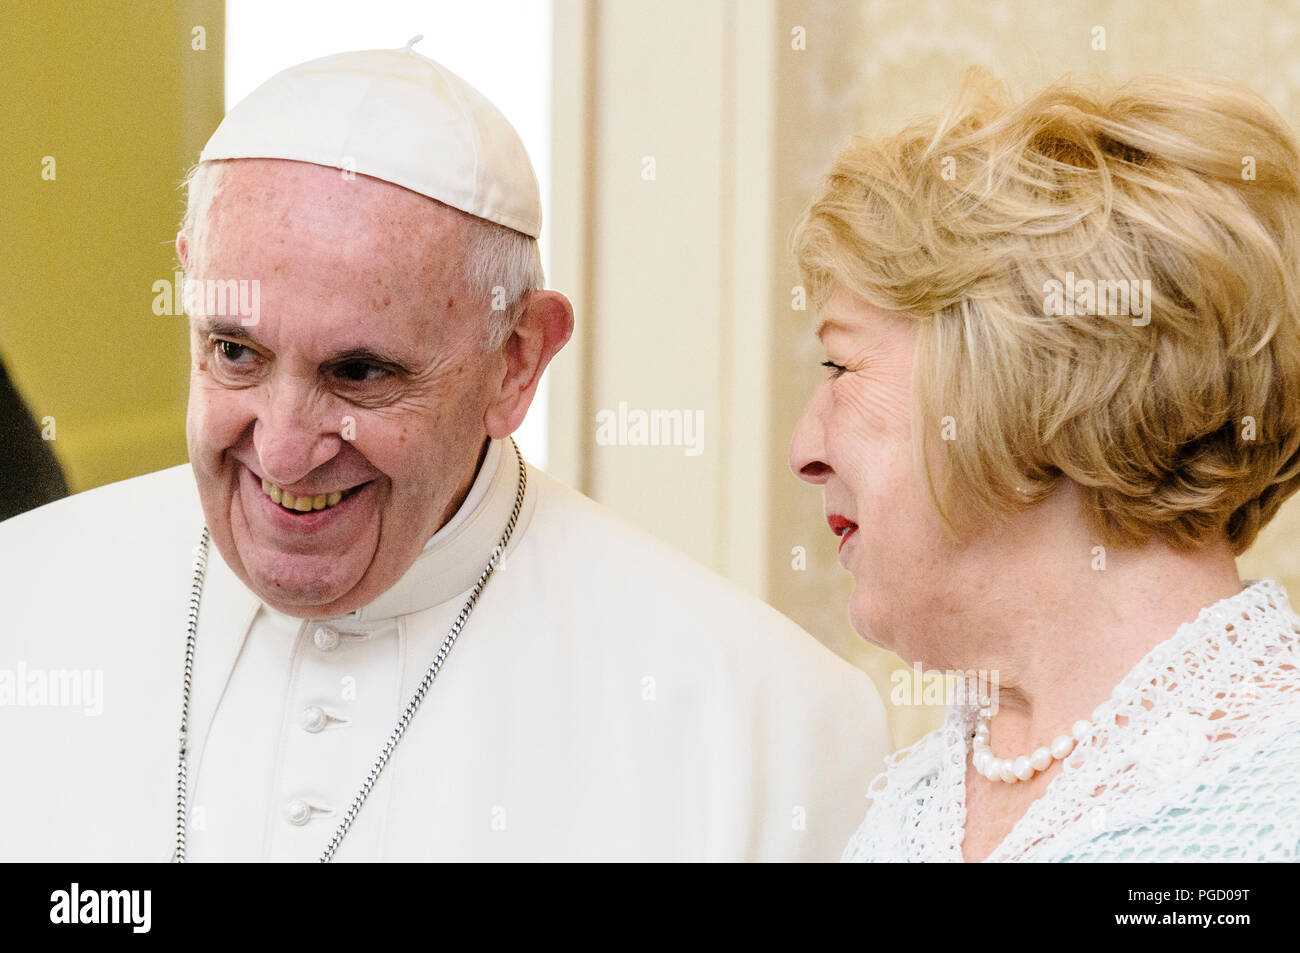 Dublin, Ireland. 25th Aug 2018. Pope Francis is welcomed to Ireland by the Irish President, Michael D. Higgins, and his wife Sabina, at the Aras An Uachtarain (President's official residence). Credit: Stephen Barnes/Alamy Live News - Stock Image